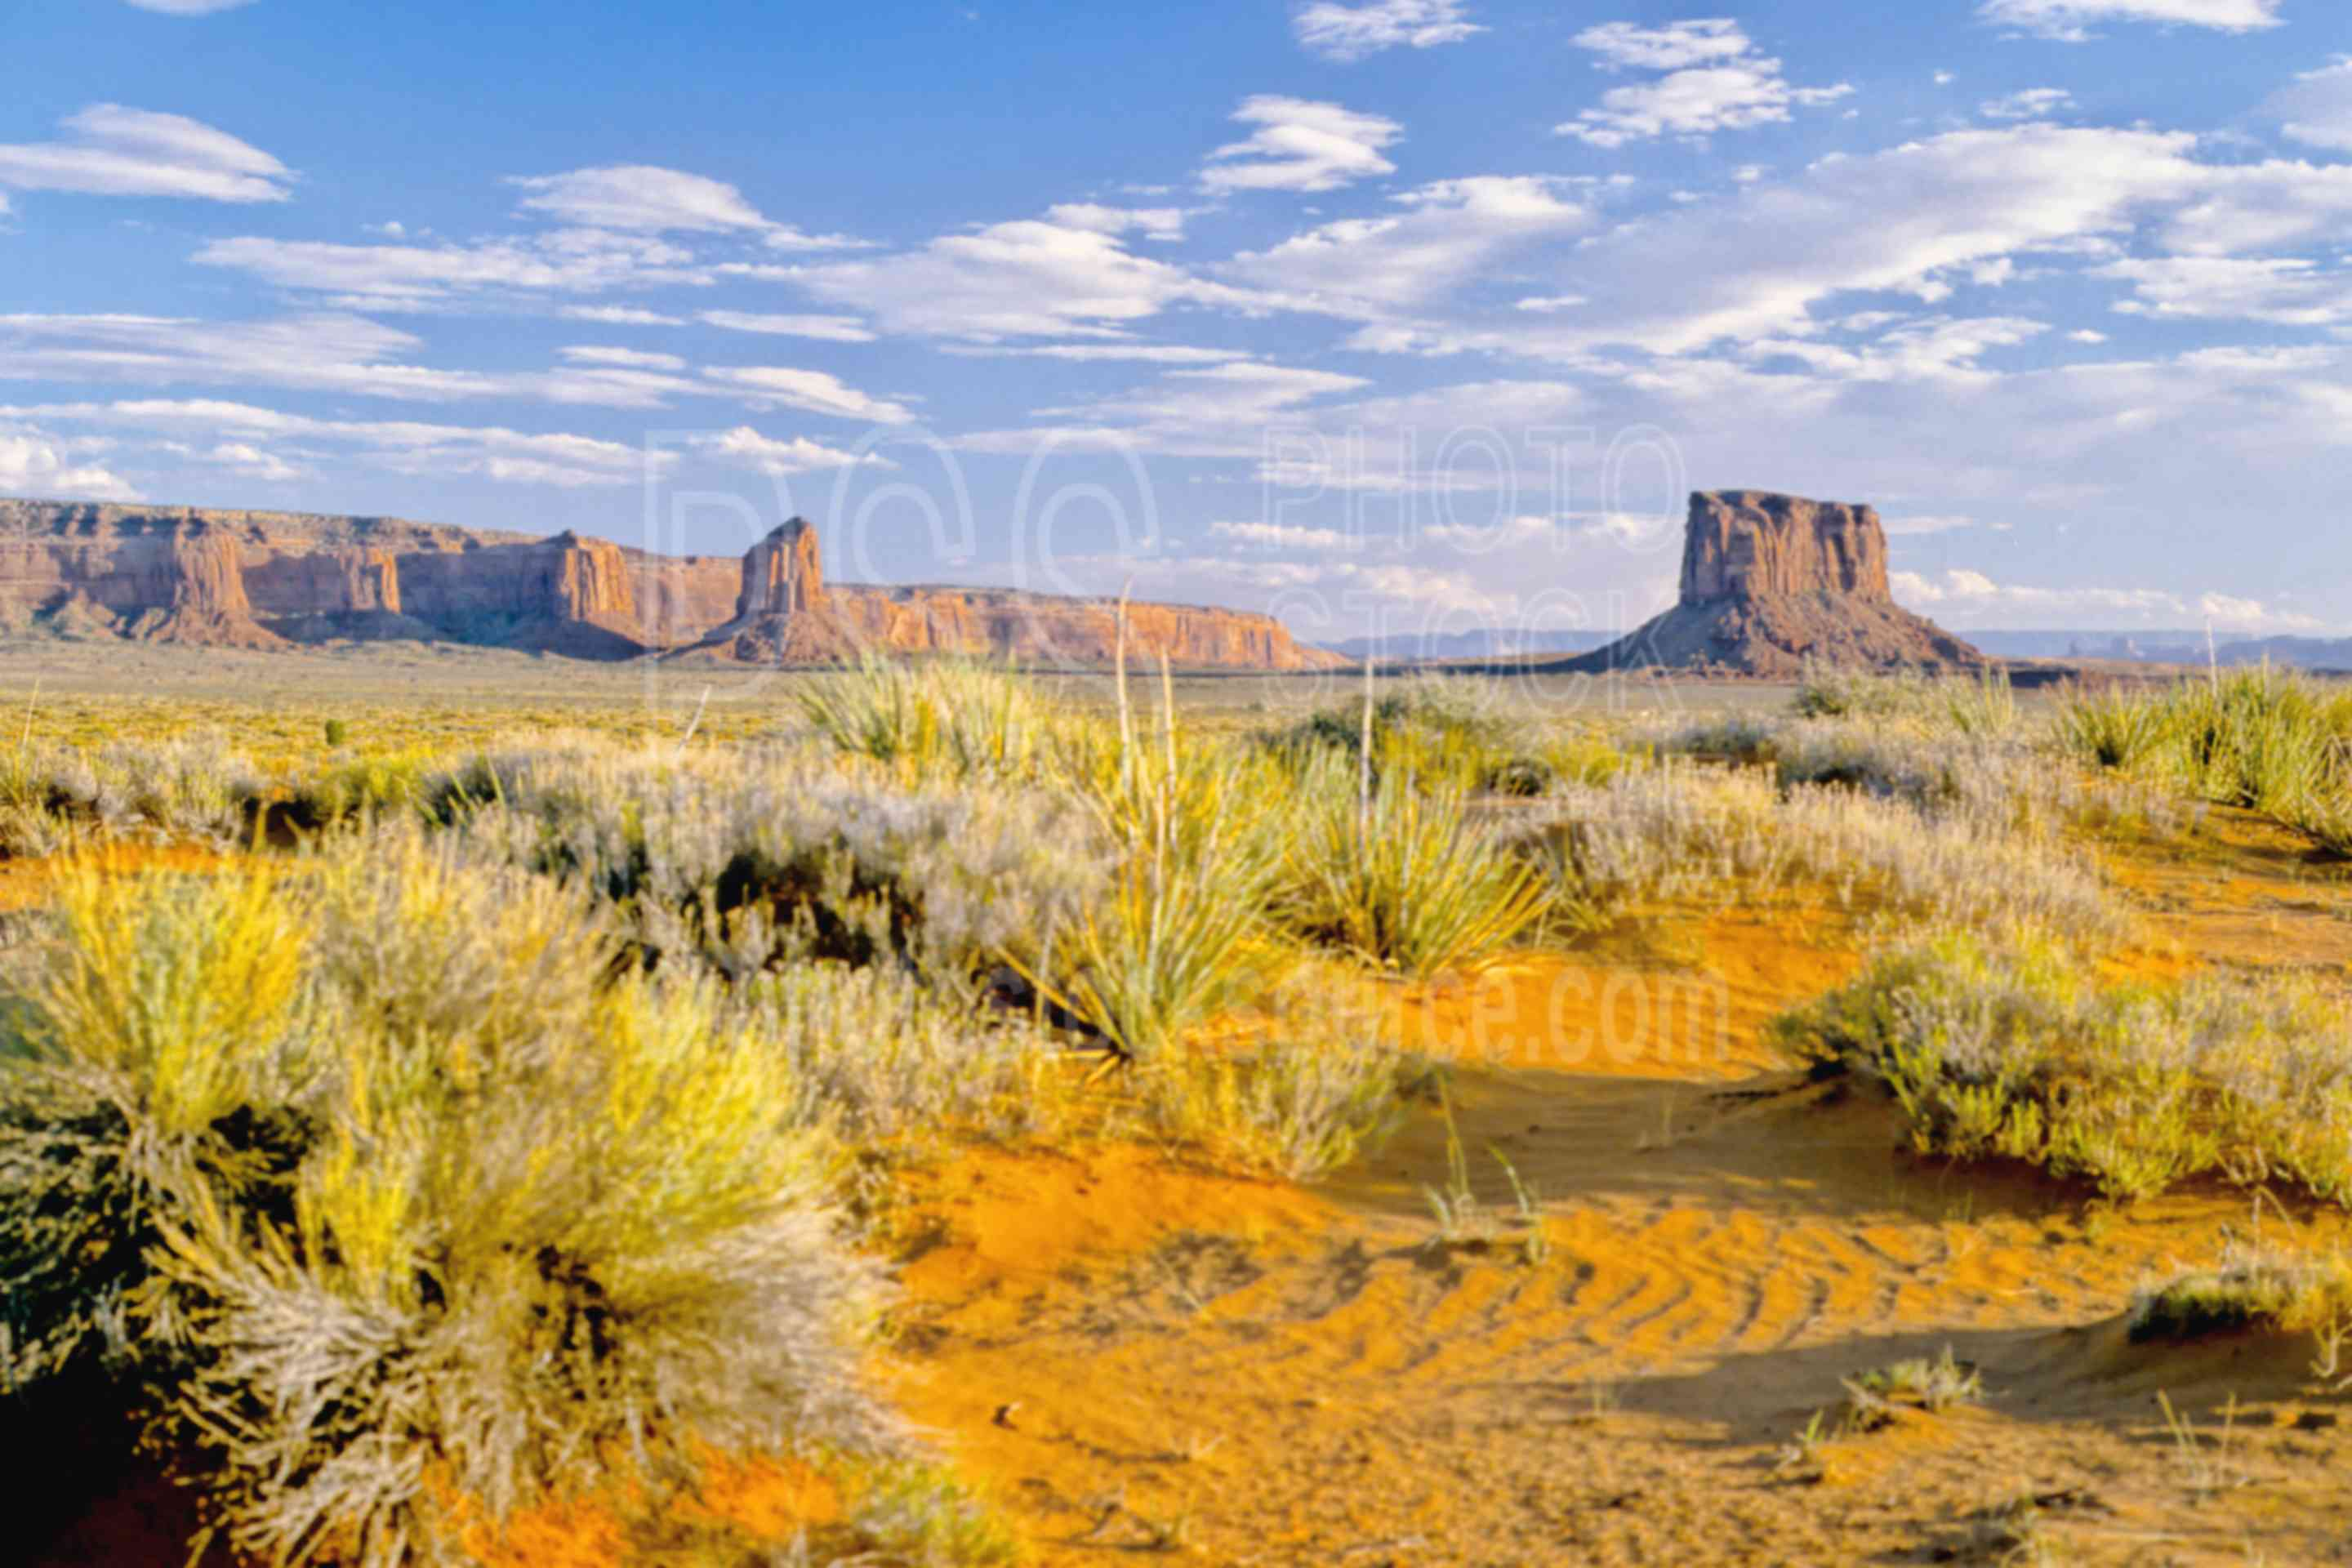 Merrick Butte,mesa,usas,national park,nature,national parks,native american